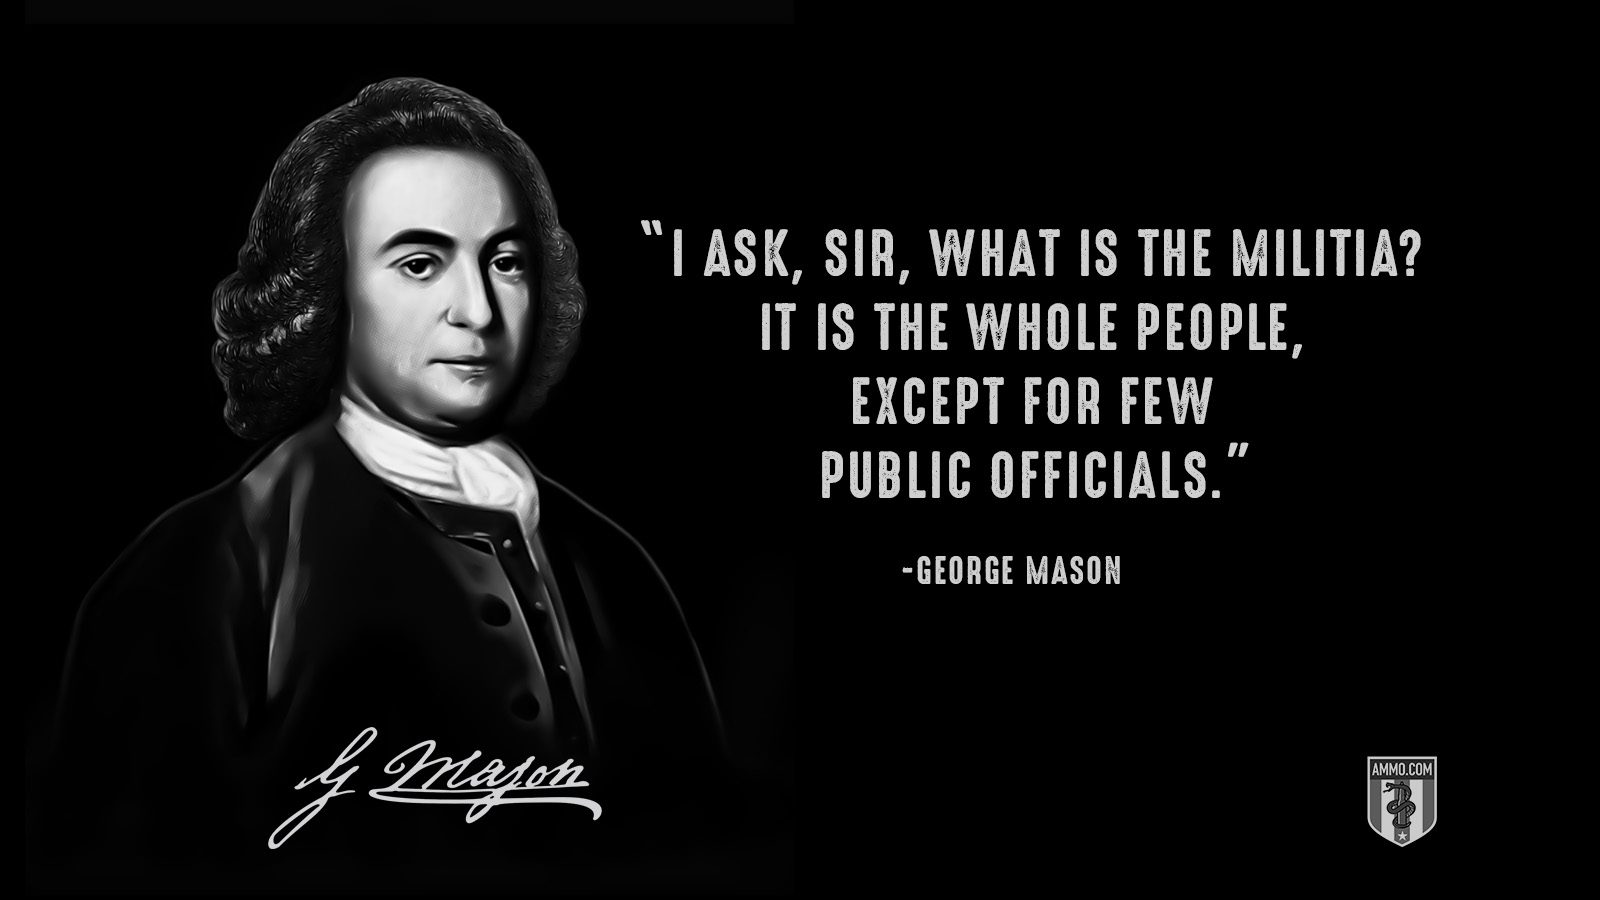 """I ask, sir, what is the militia? It is the whole people, except for few public officials."" - George Mason"